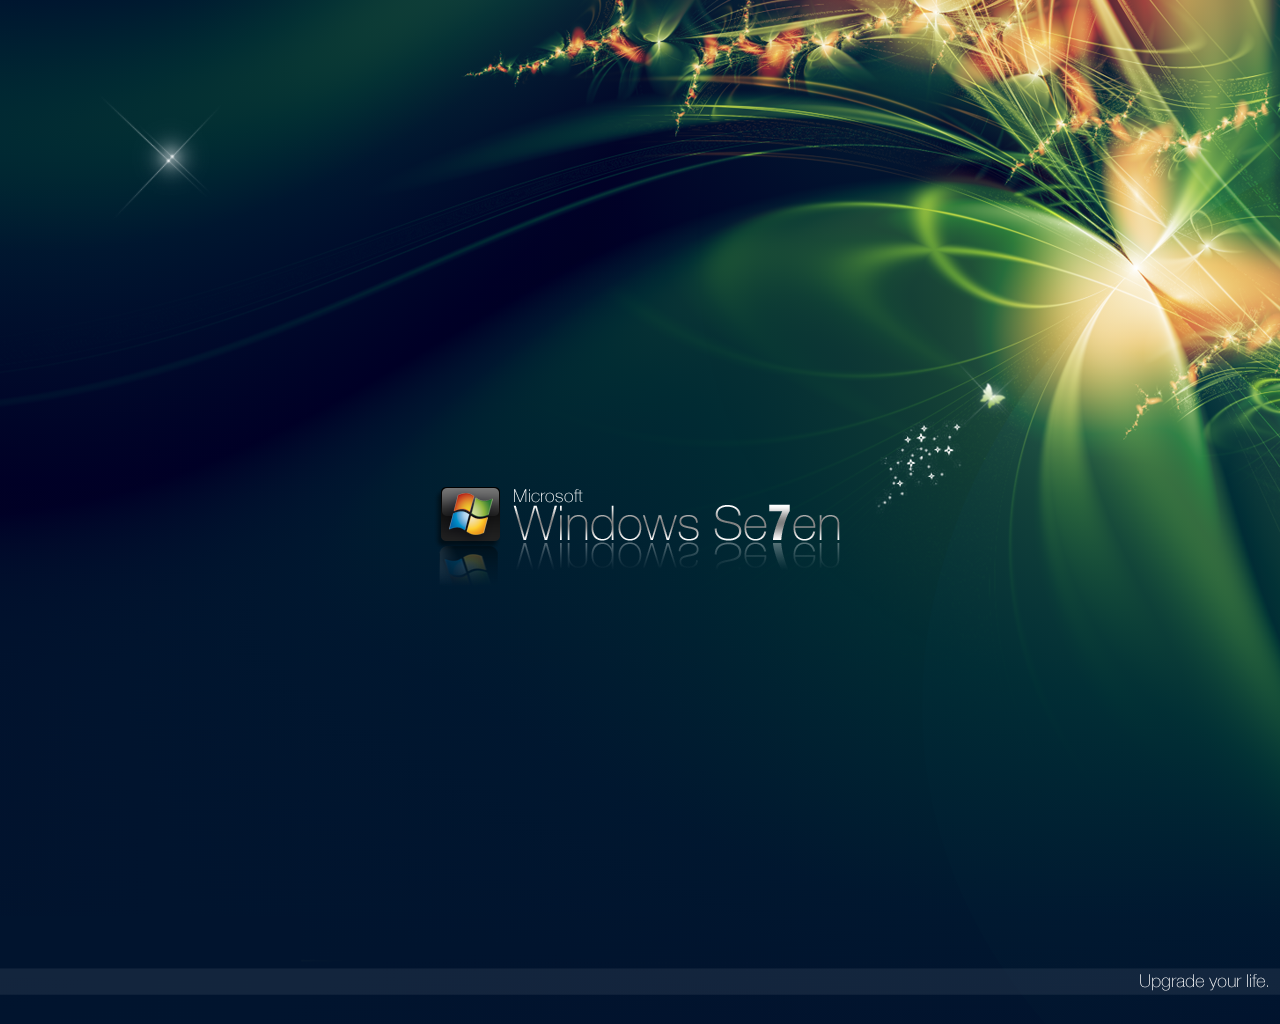 windows7 desktop wallpaper free download: windows 7 hd wallpaper